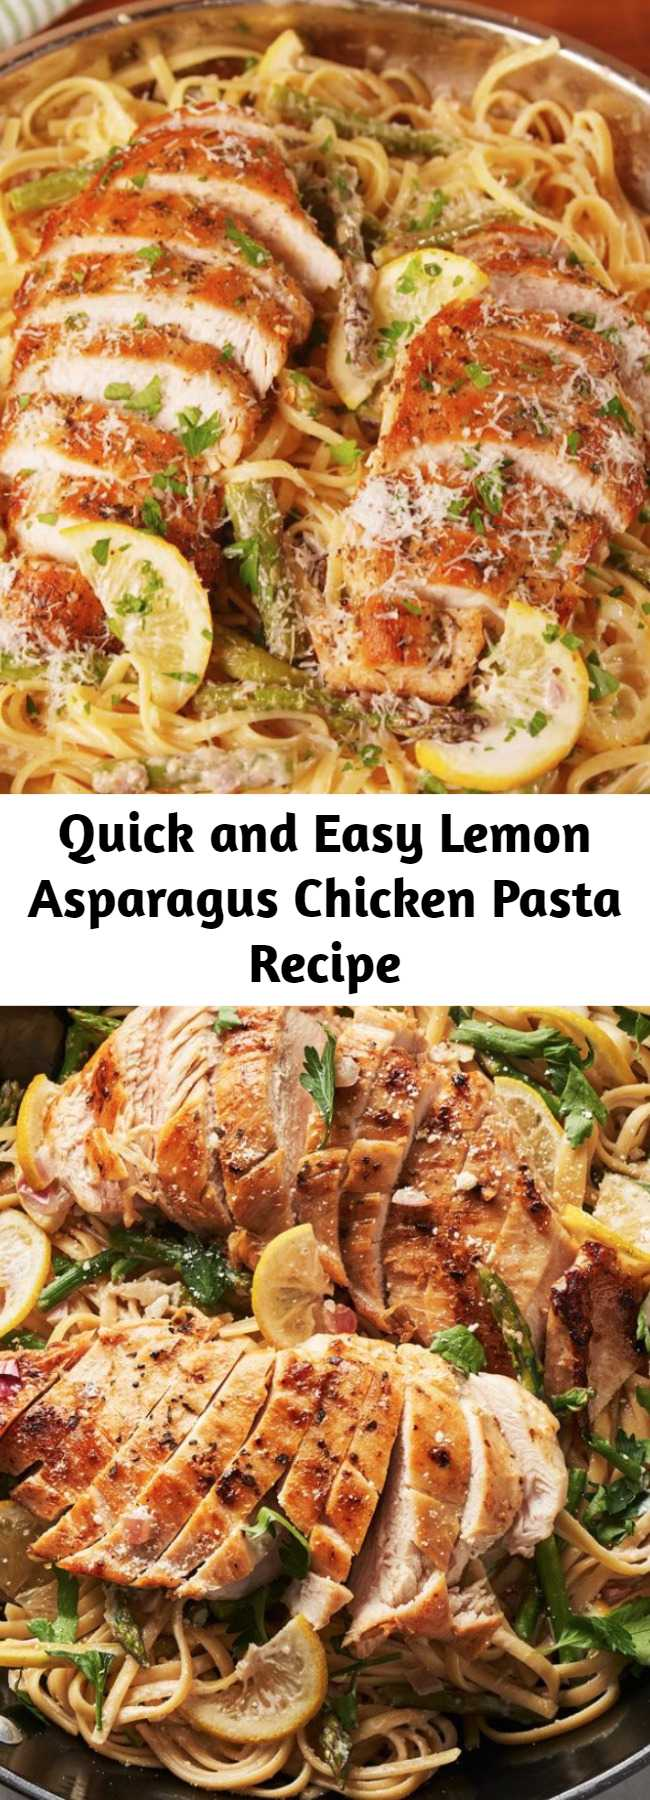 Quick and Easy Lemon Asparagus Chicken Pasta Recipe - This lemon asparagus chicken tastes like spring in the best of ways. #creamy #sauce #dinner #linguine #pasta #chicken #parmesan #asparagus #spring #veggies #onepot #lemon #quick